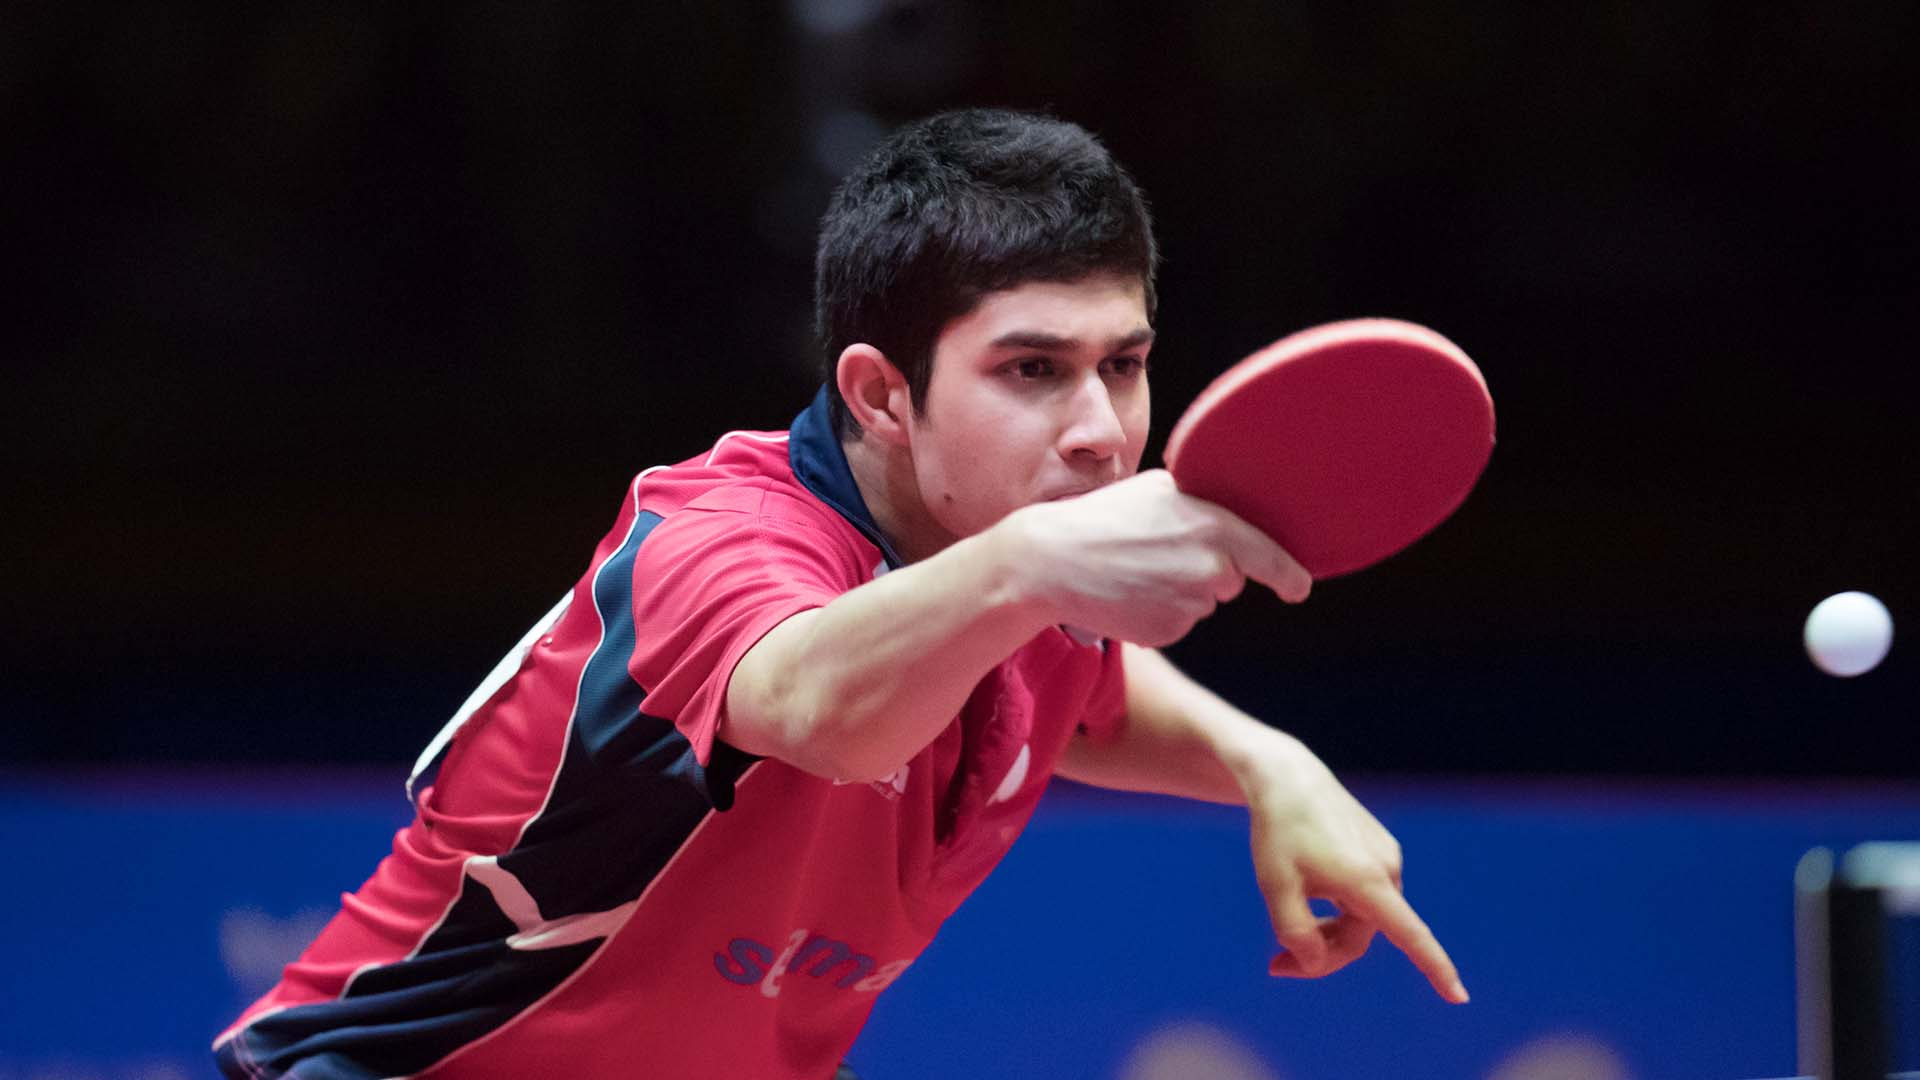 A special tournament, Kanak Jha grateful for opportunities afforded